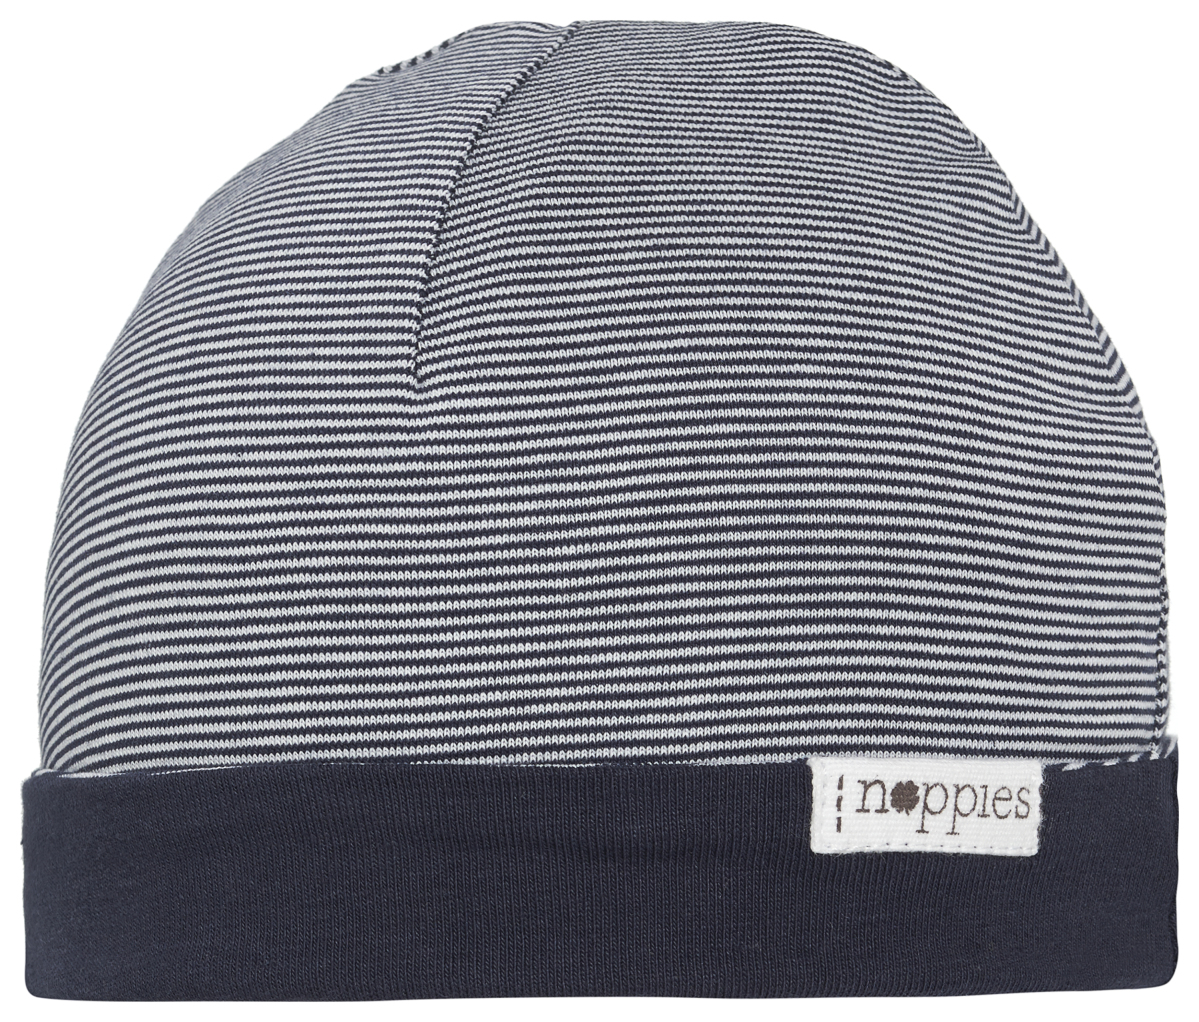 Noppies Bonnet Jandino navy